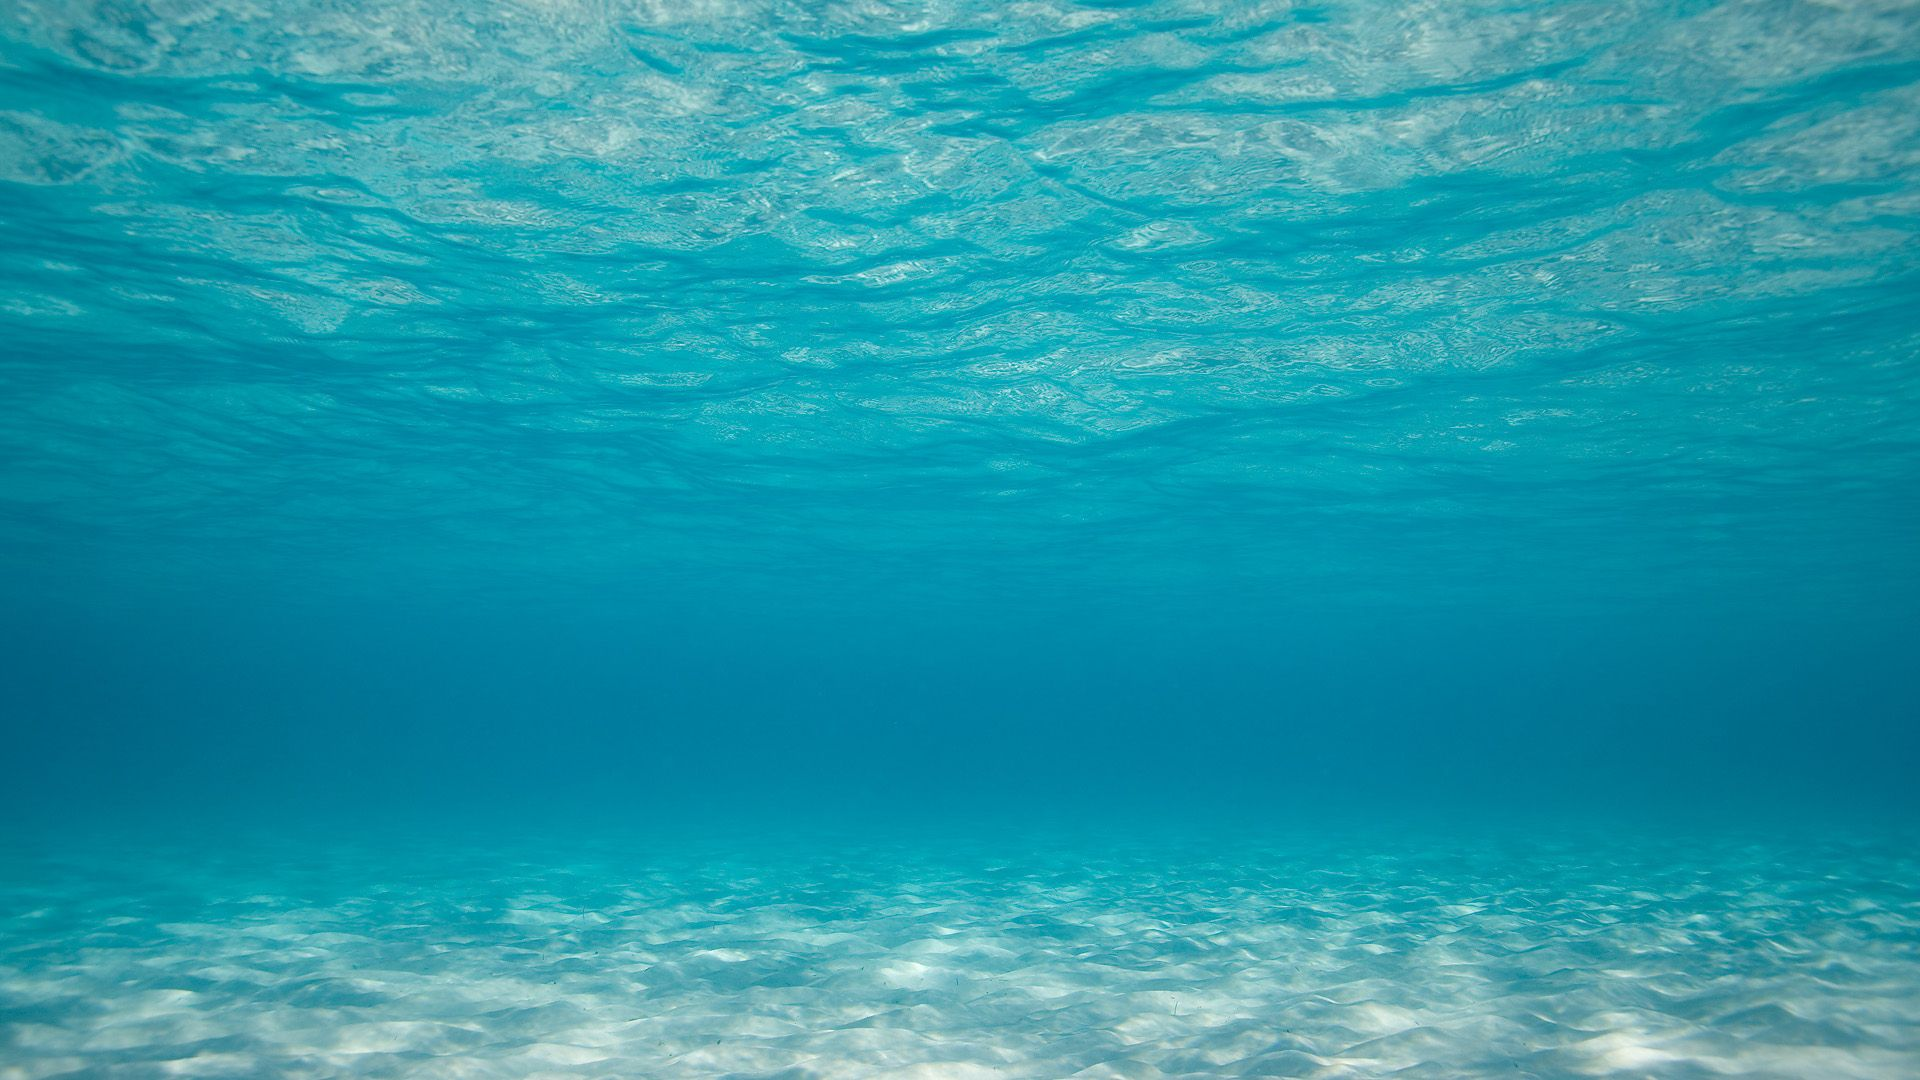 Under The Ocean Wallpaper